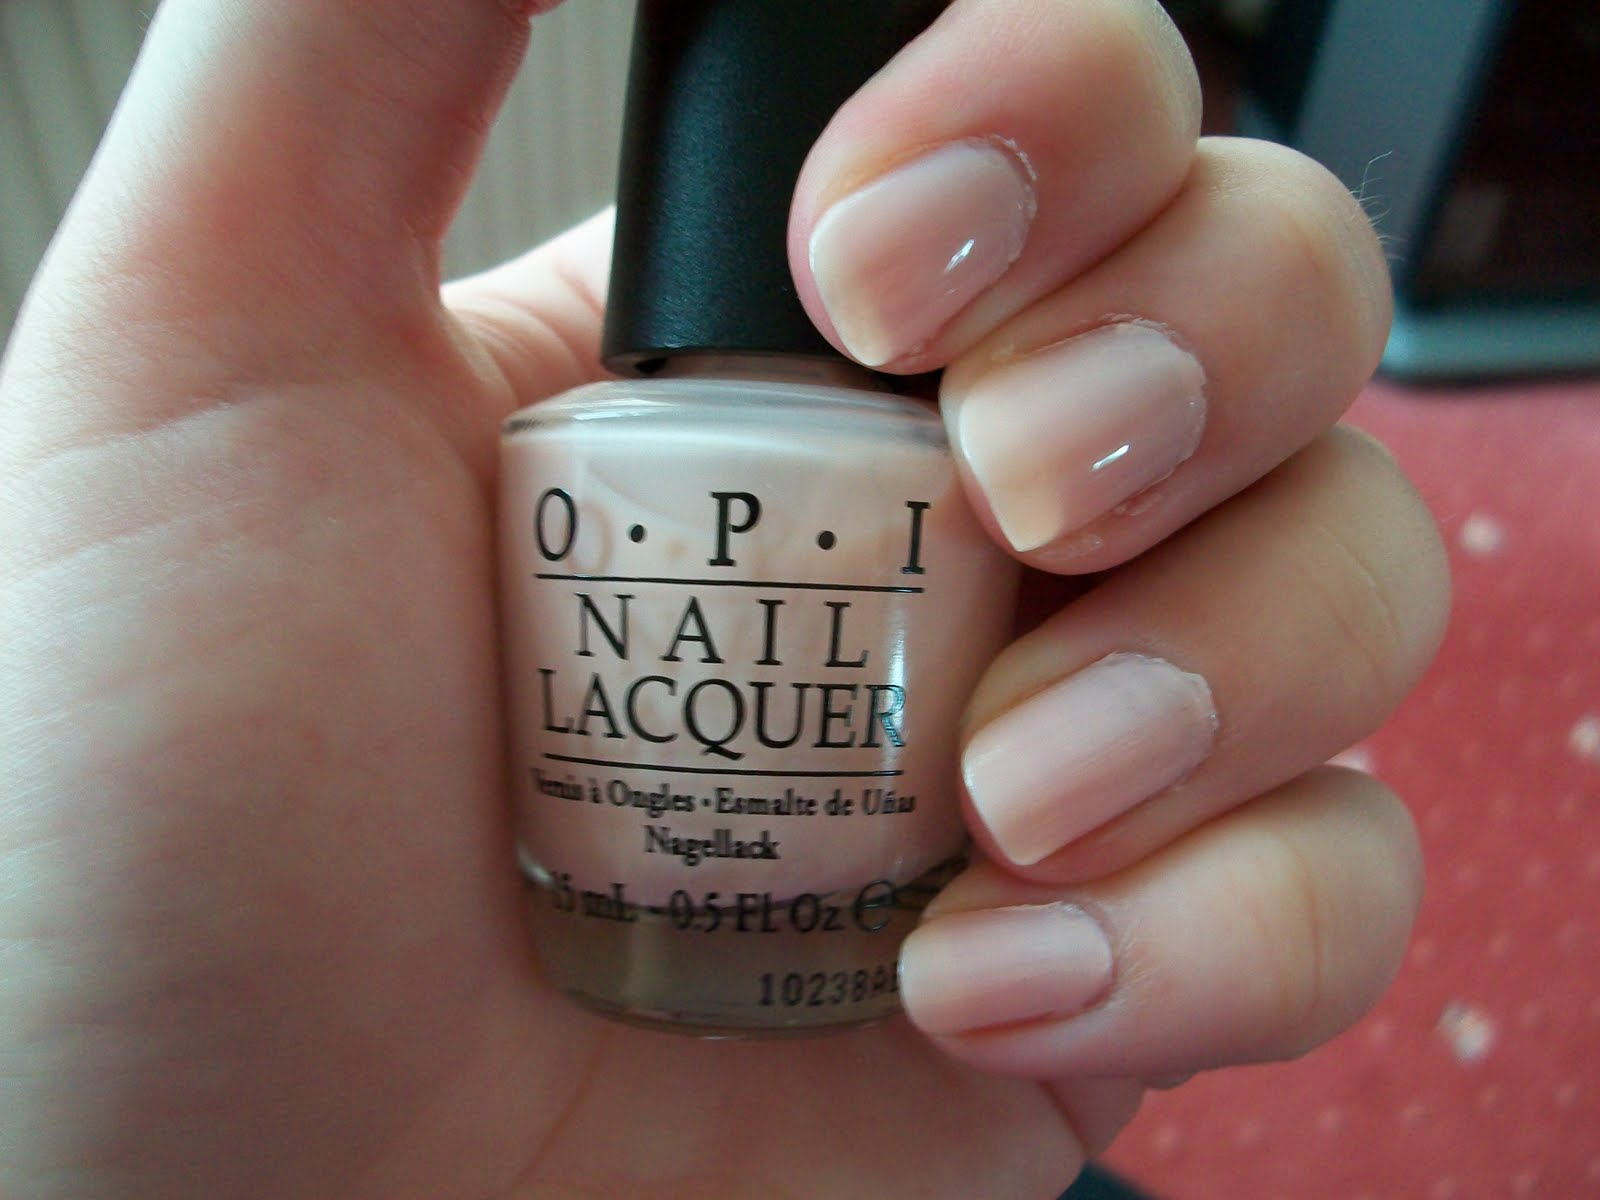 Fabuleux Maz Makeup: OPI Sweetheart - Swatch & Review ER92